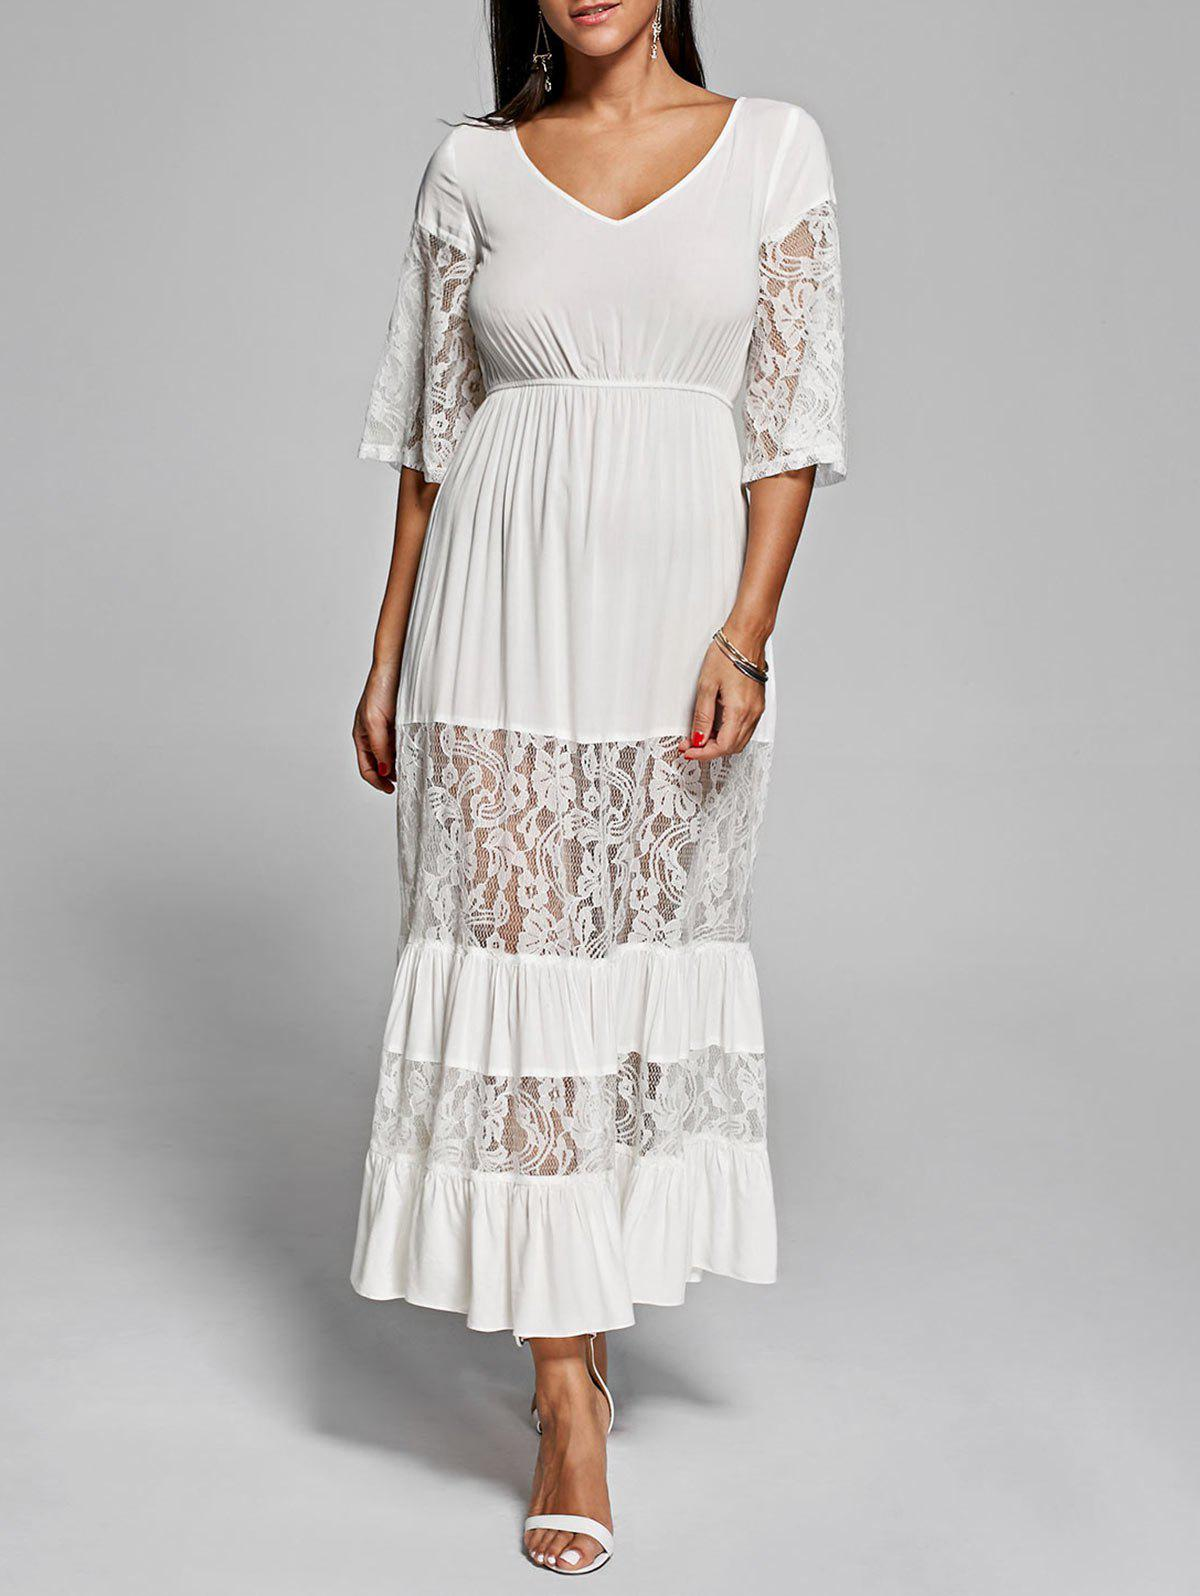 Lace Insert V Neck Romantic Boho Maxi Dress - OFF WHITE L